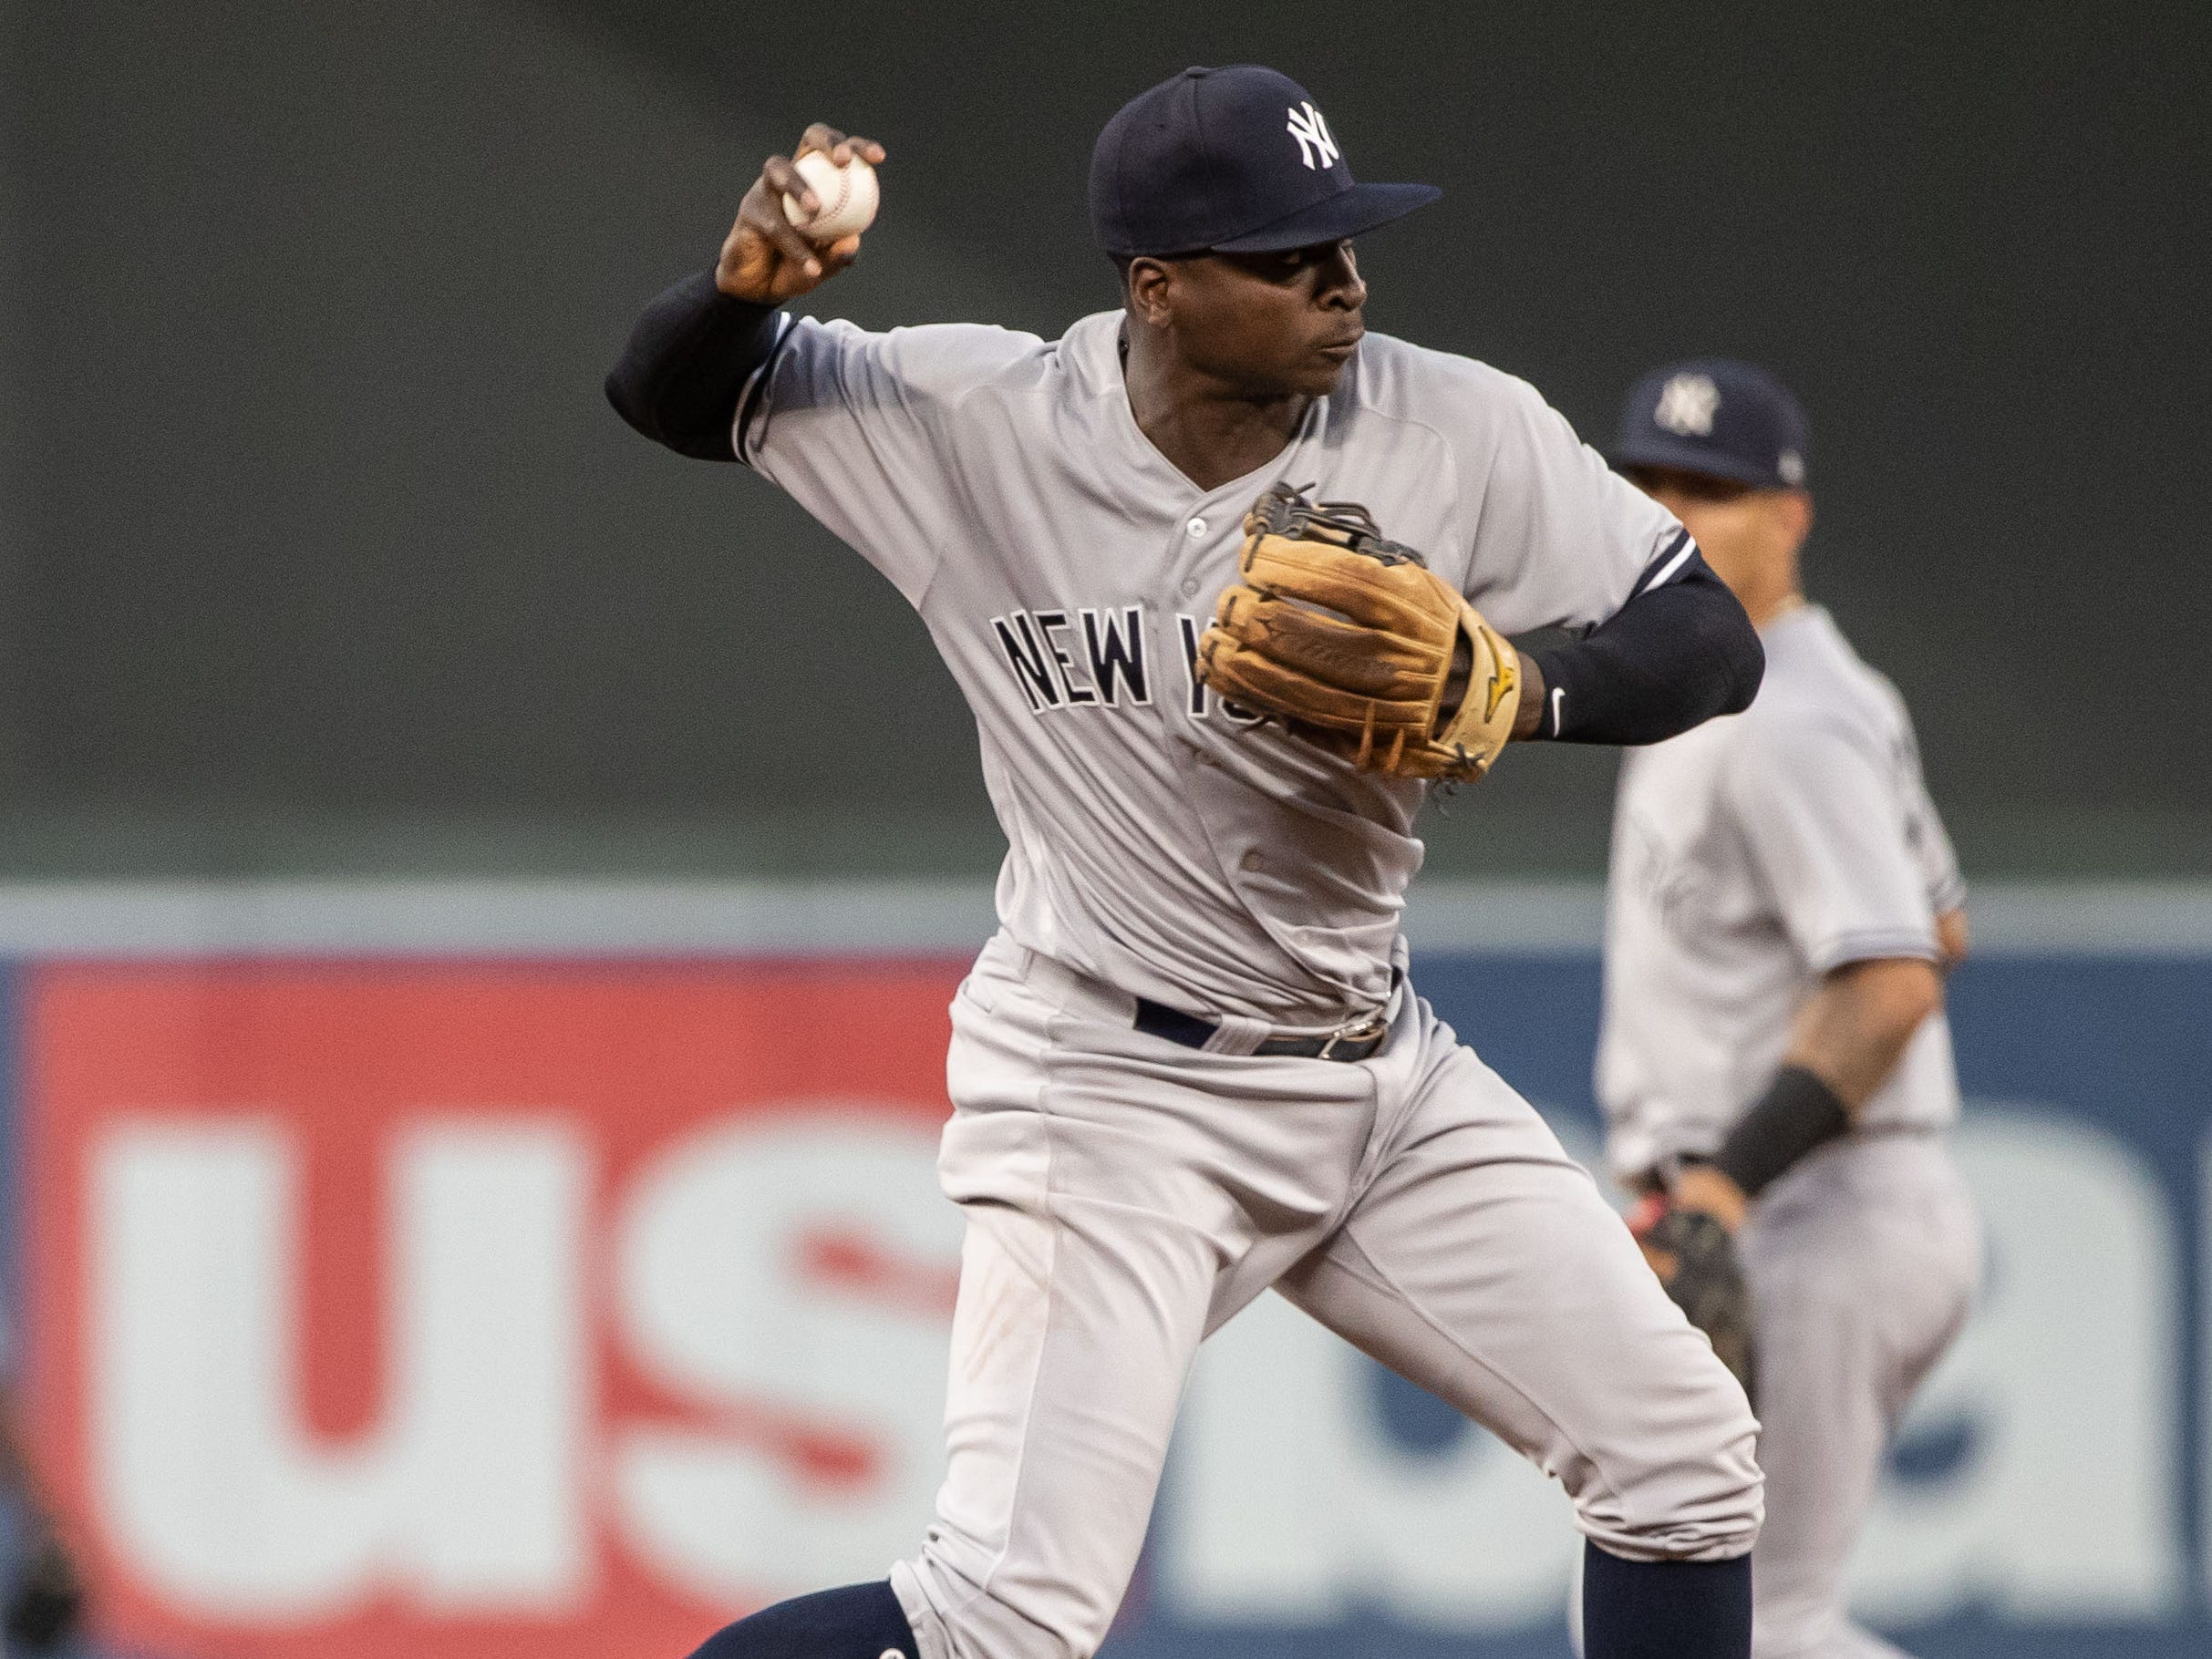 Sep 12, 2018; Minneapolis, MN, USA; New York Yankees shortstop Didi Gregorius (18) turns the double play for the out during the first inning against the Minnesota Twins at Target Field.